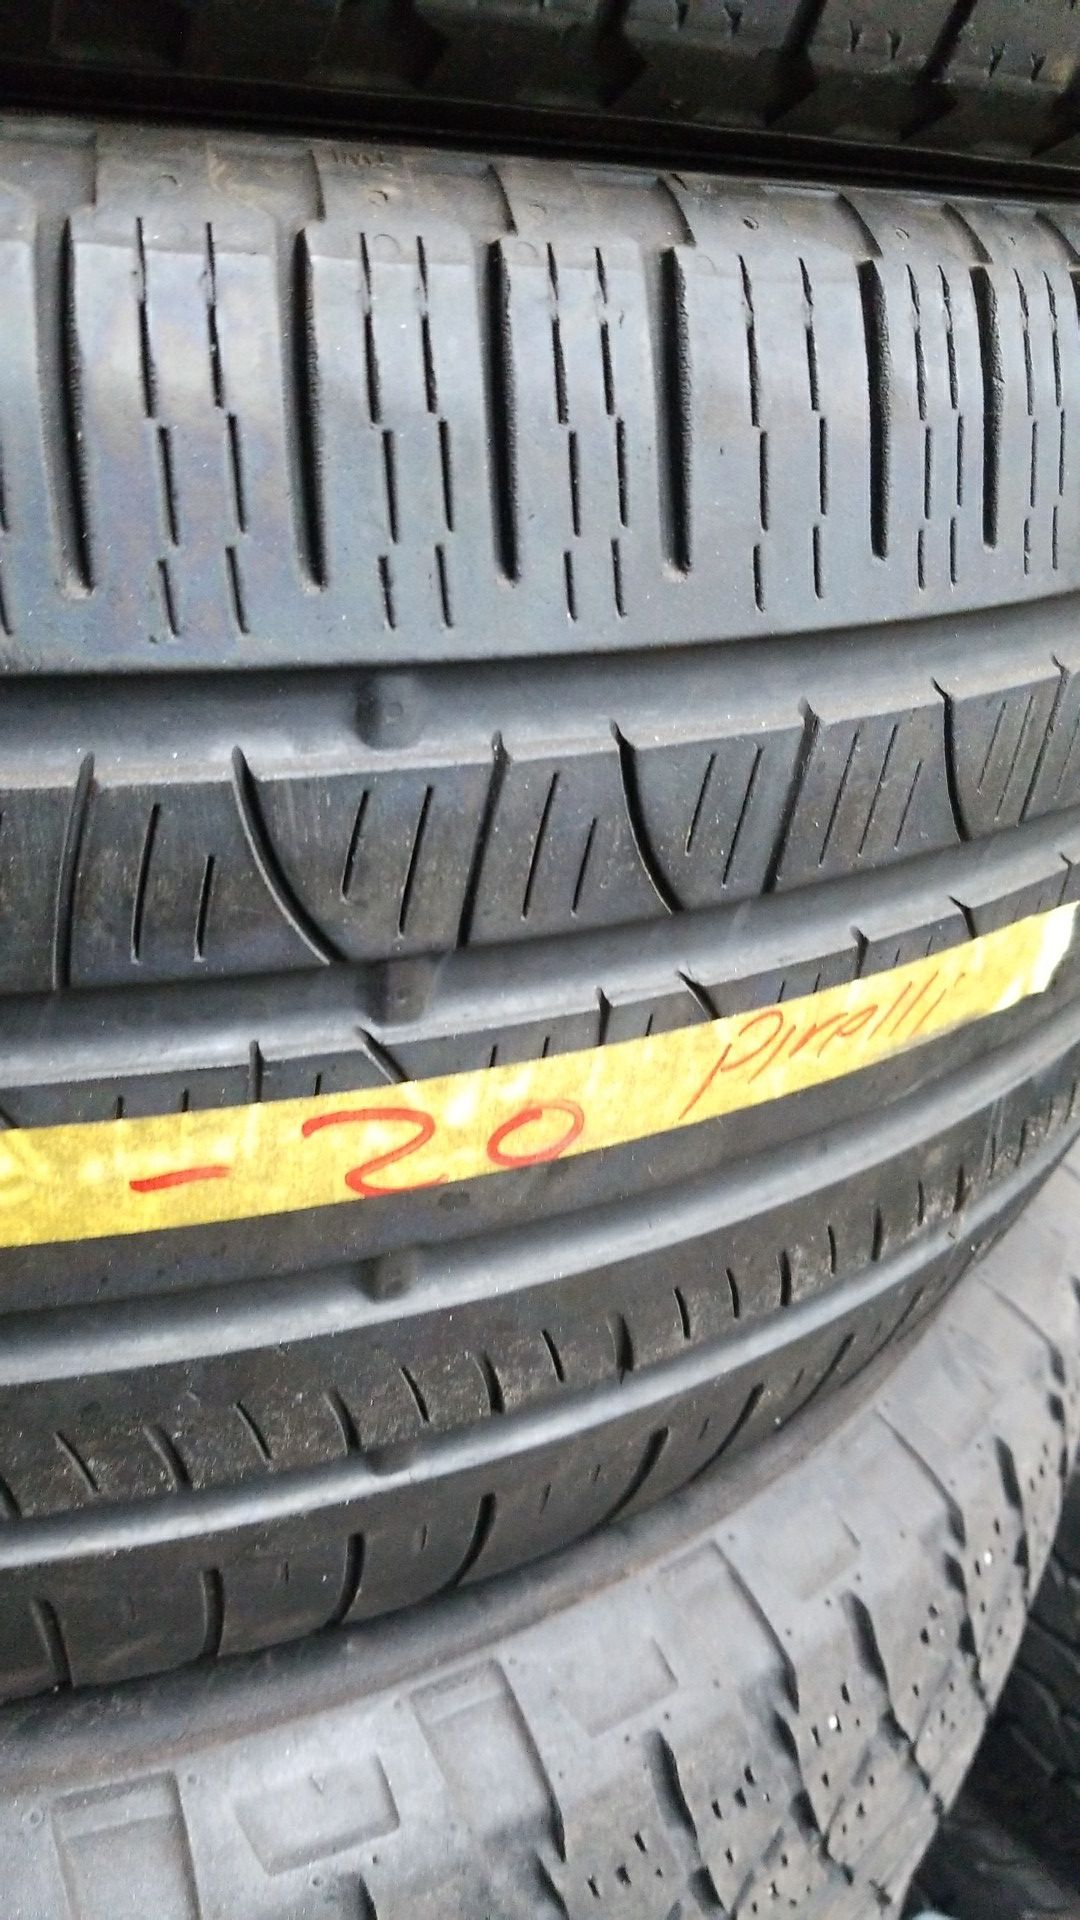 265 50 20 used tires. ONLY 2